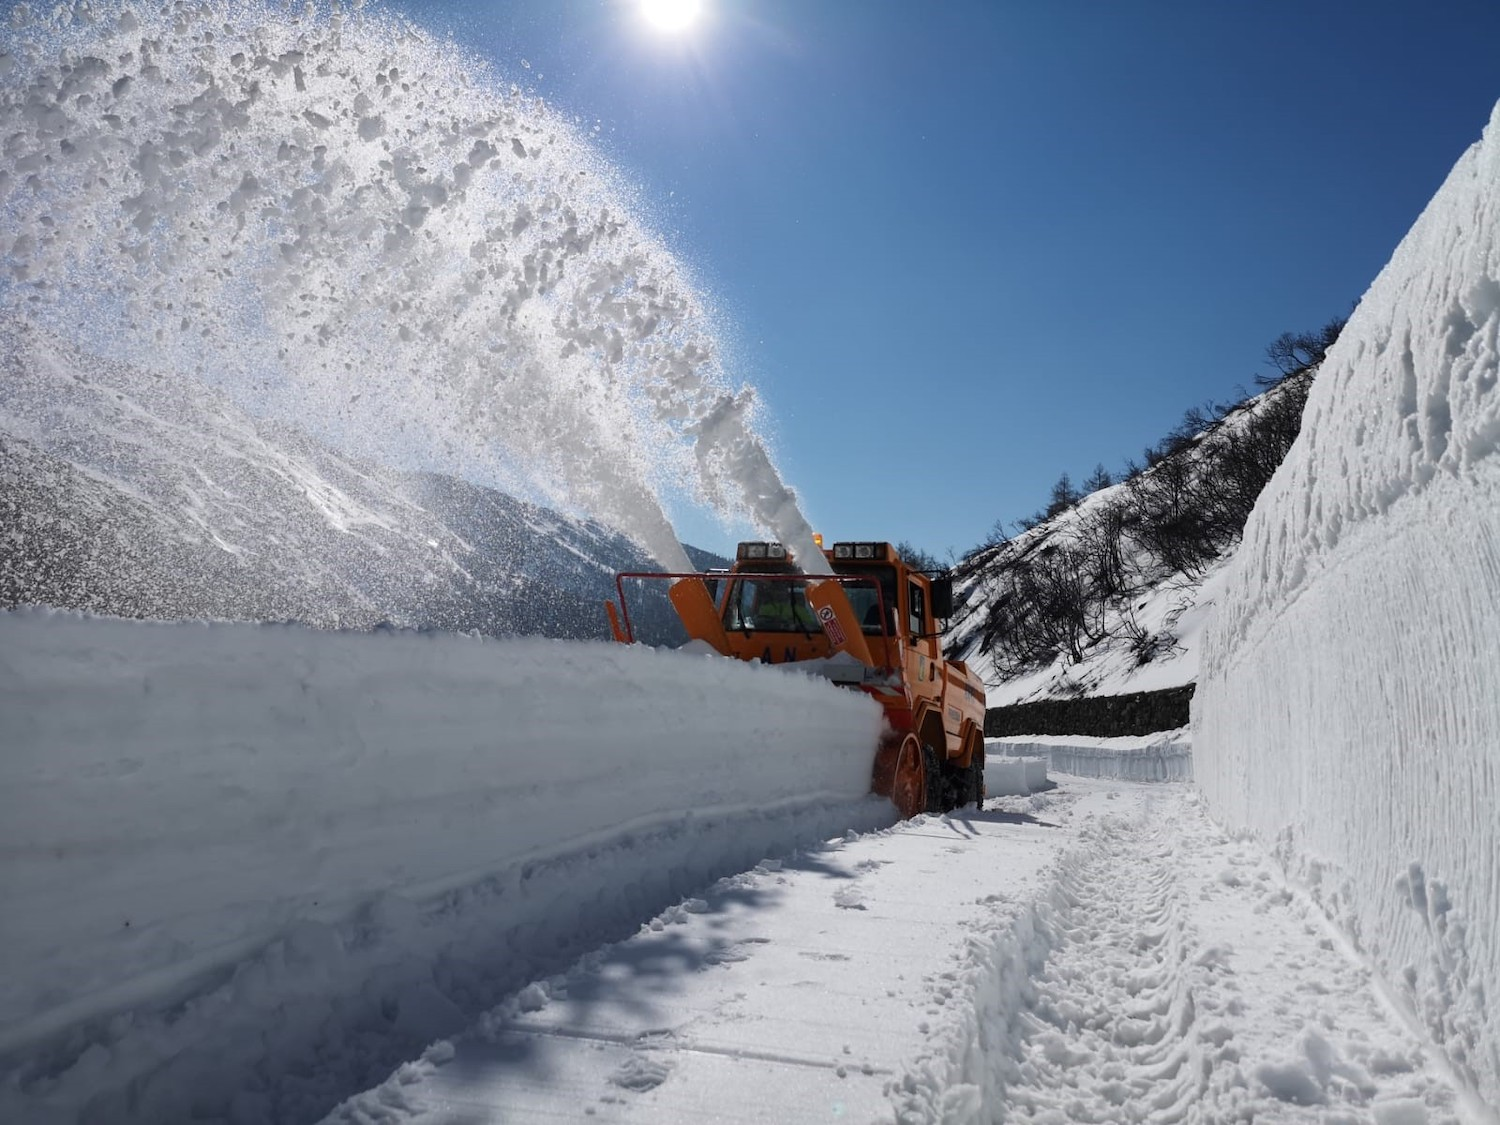 The Gran San Bernardo pass has reopened. Photo: AostaSera